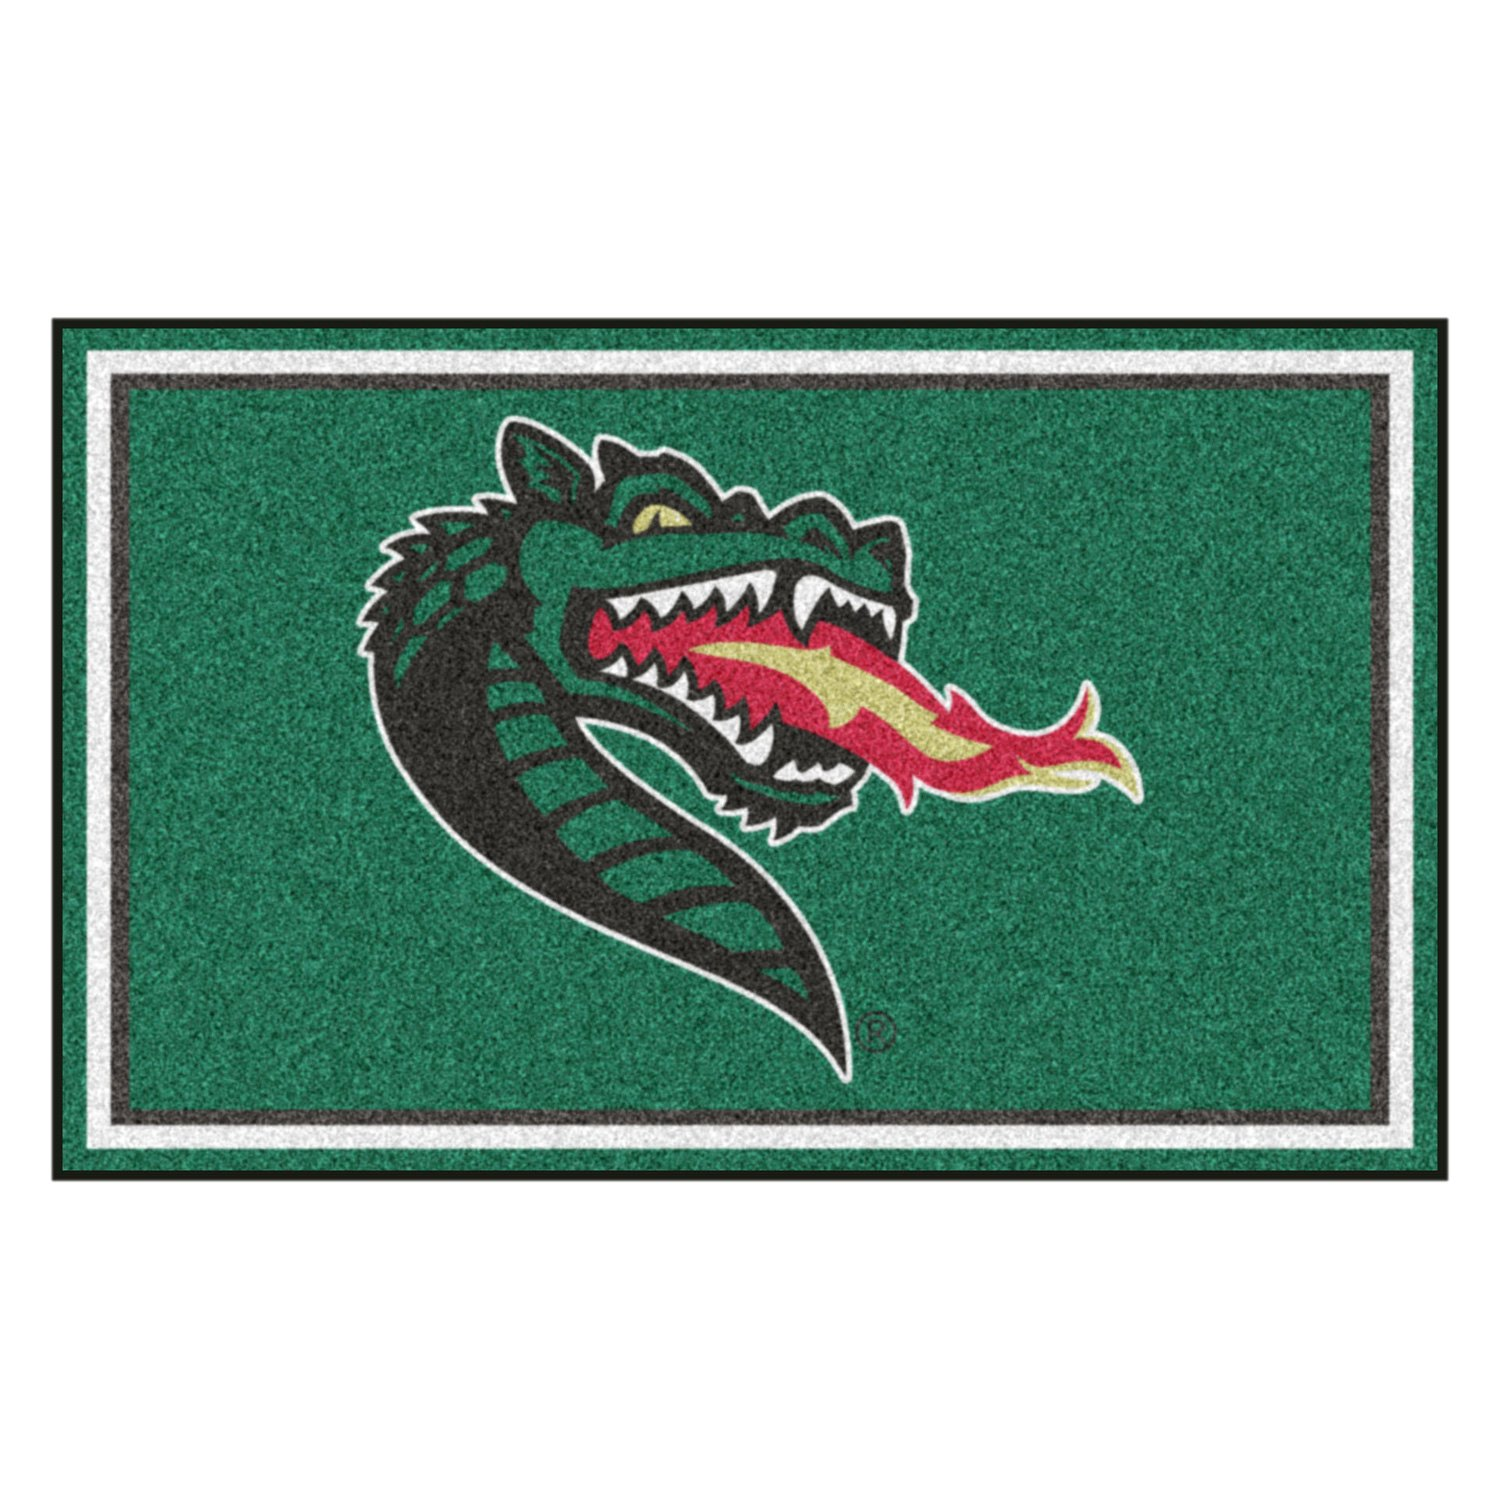 Fanmats 174 20275 University Of Alabama At Birmingham Logo